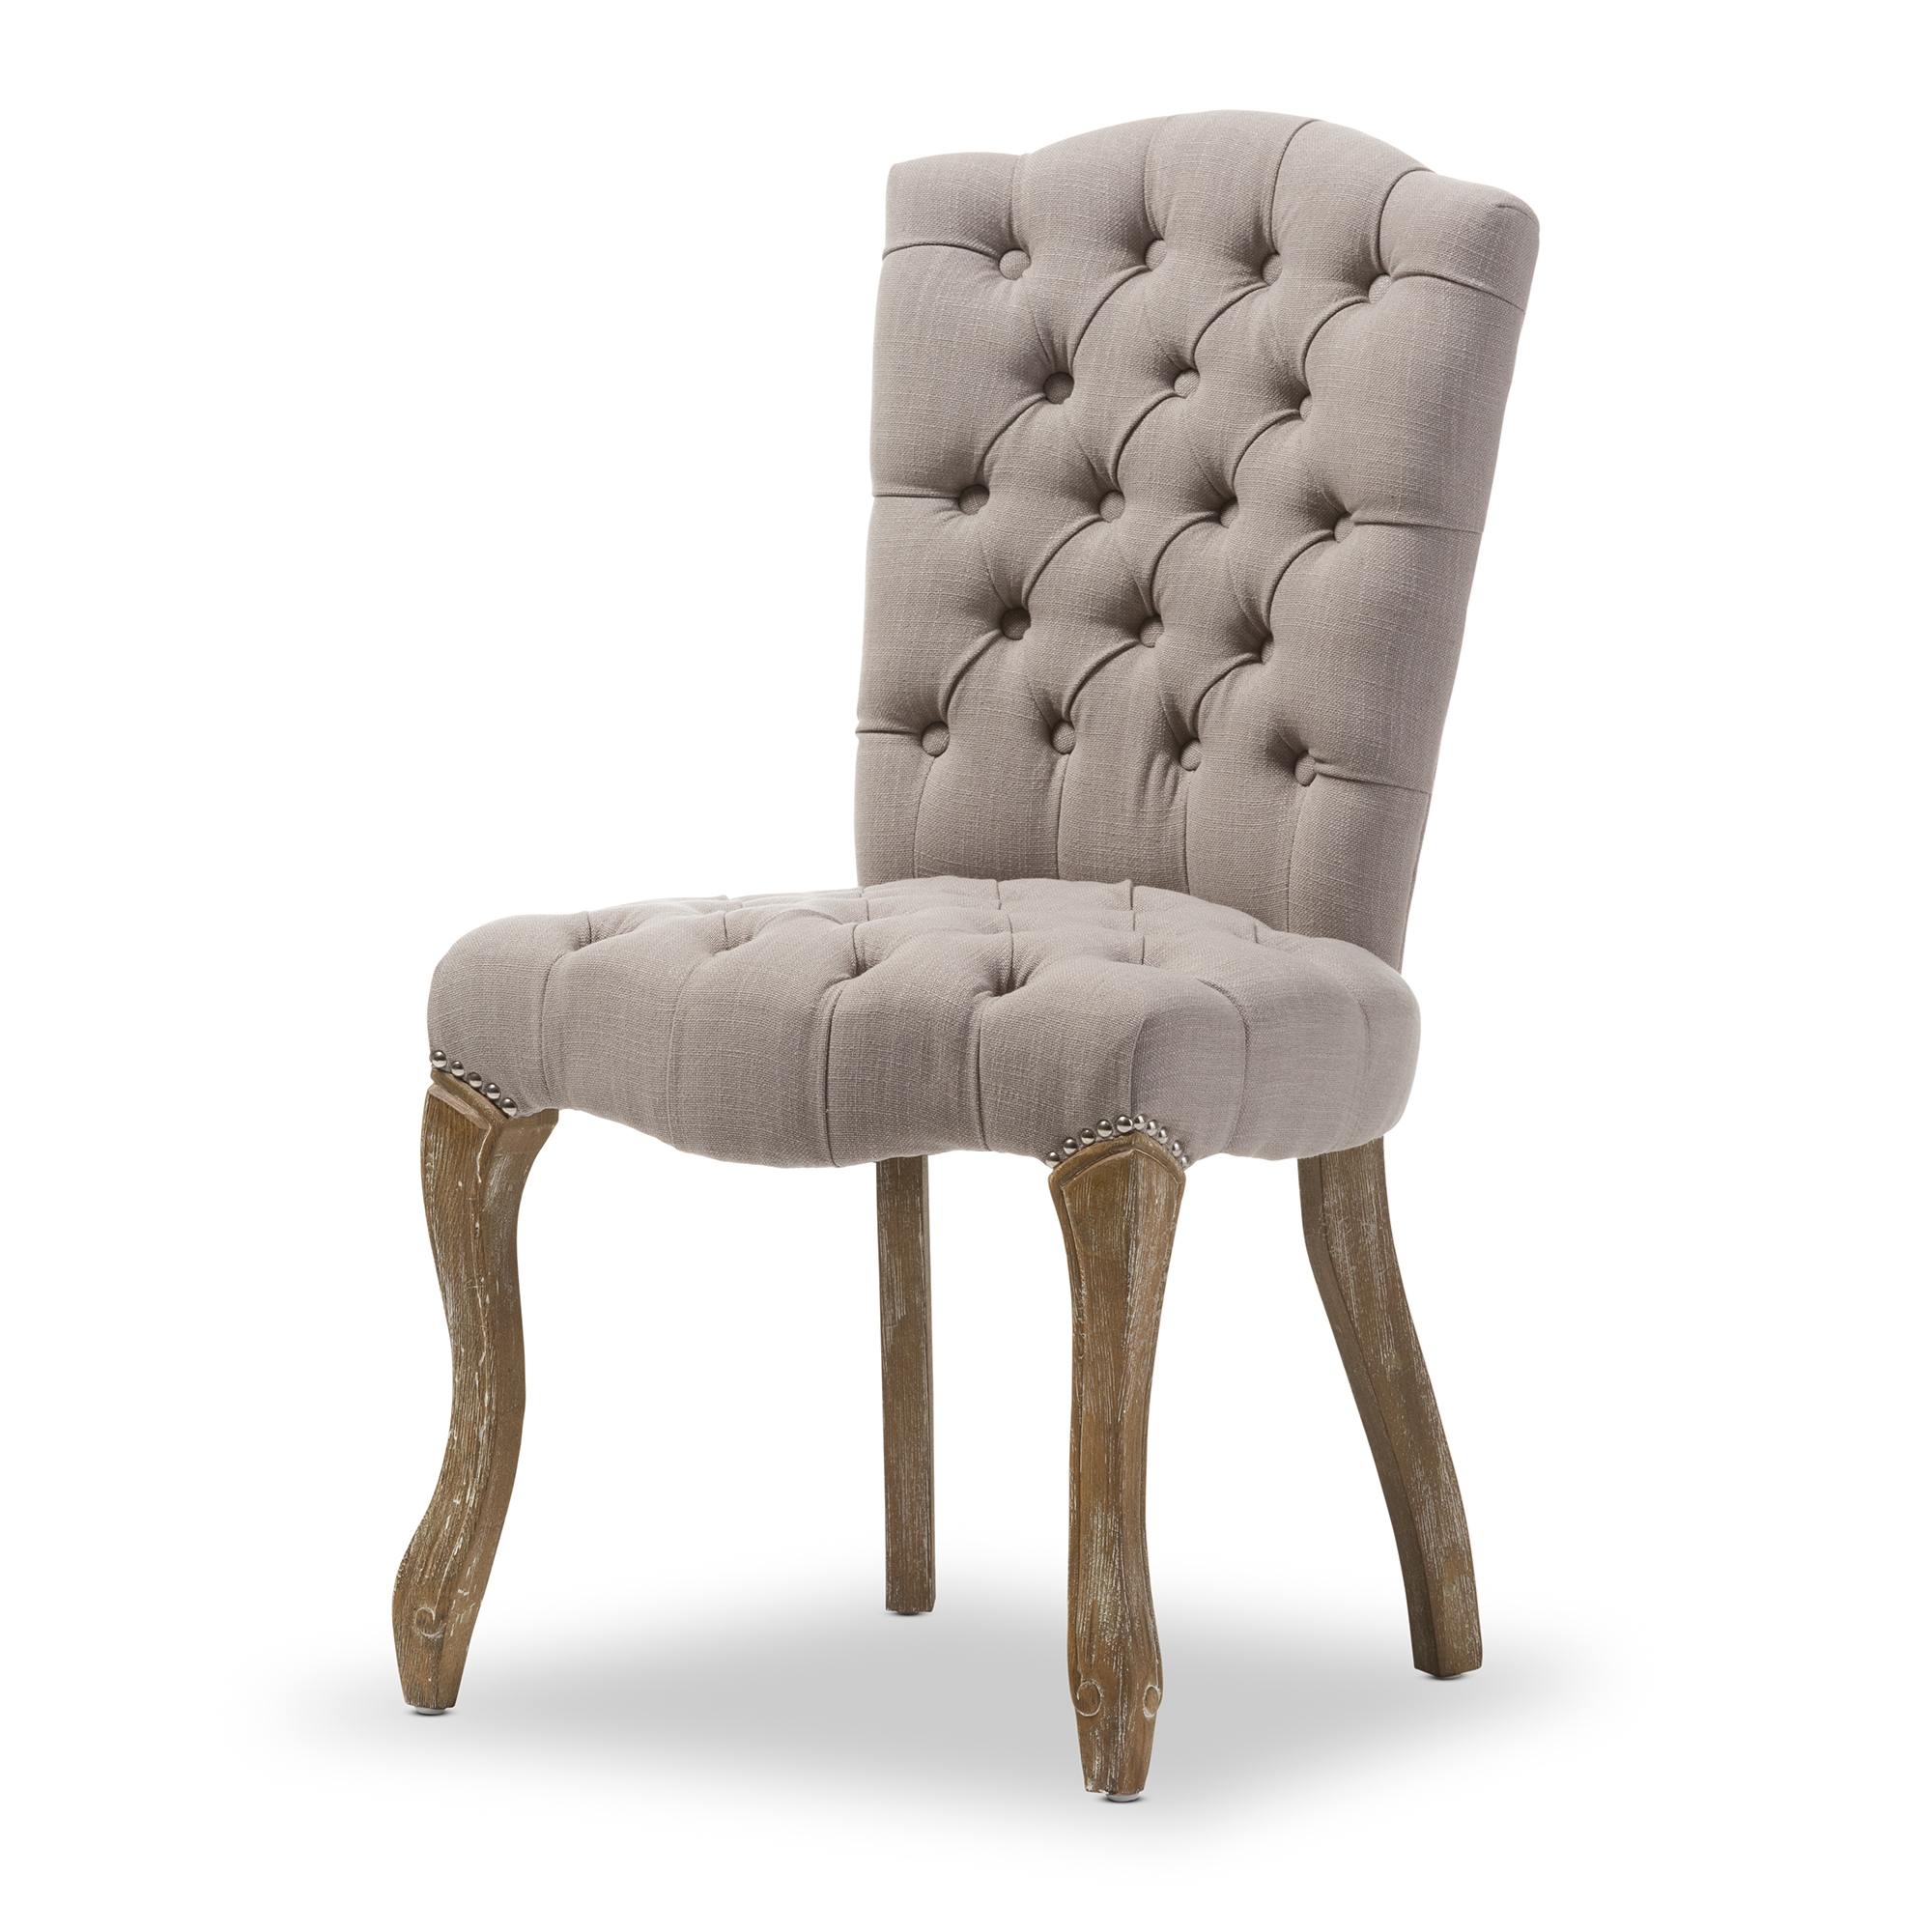 Ordinaire Baxton Studio Clemence French Provincial Inspired Weathered Oak Beige Linen  Upholstered Dining Side Chair